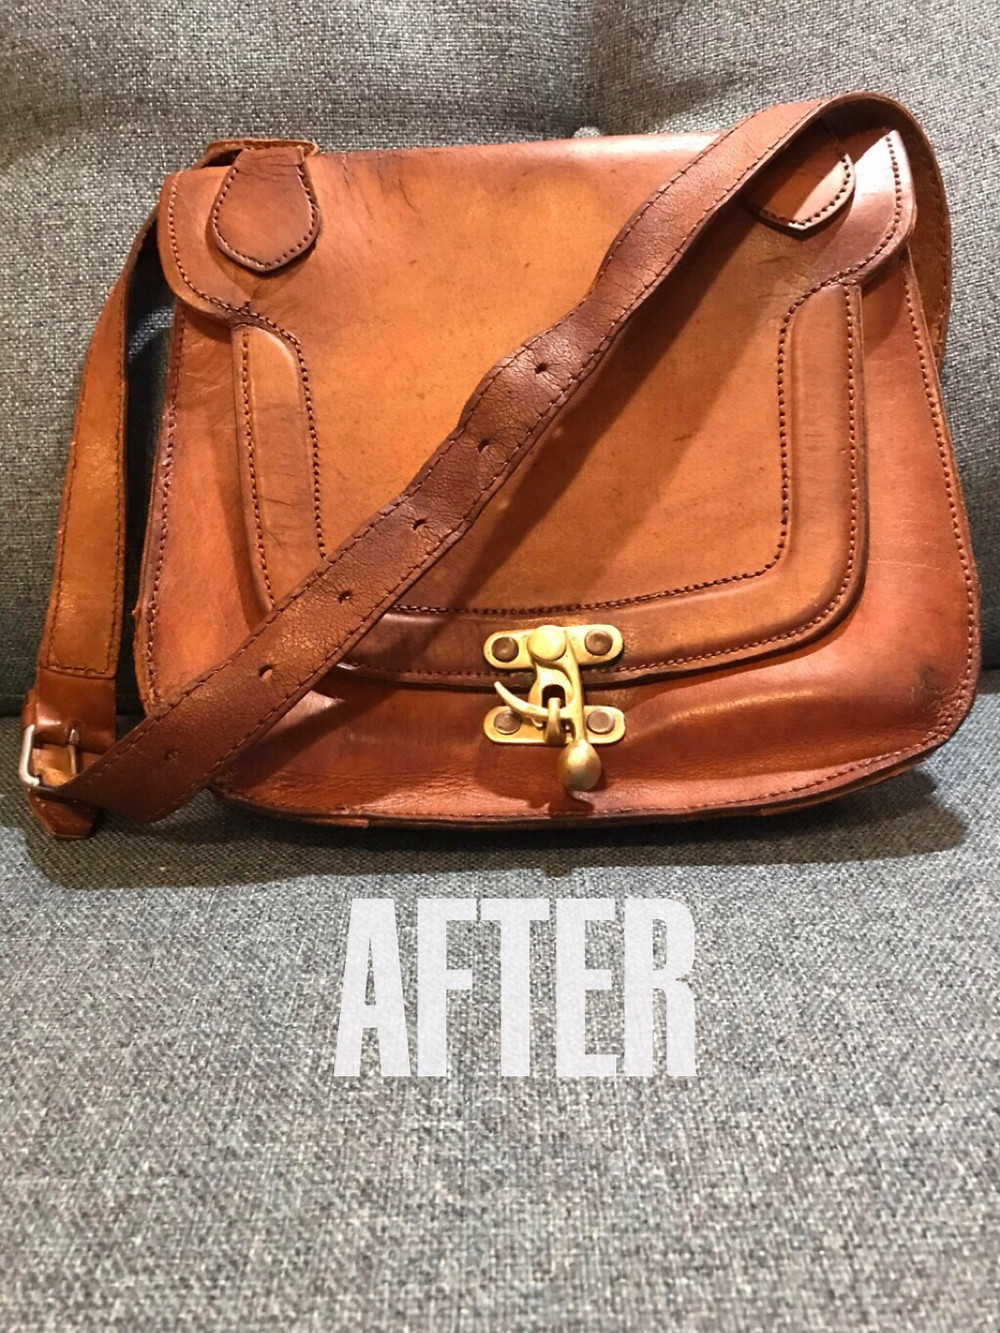 Restored Leather Saddle Bag